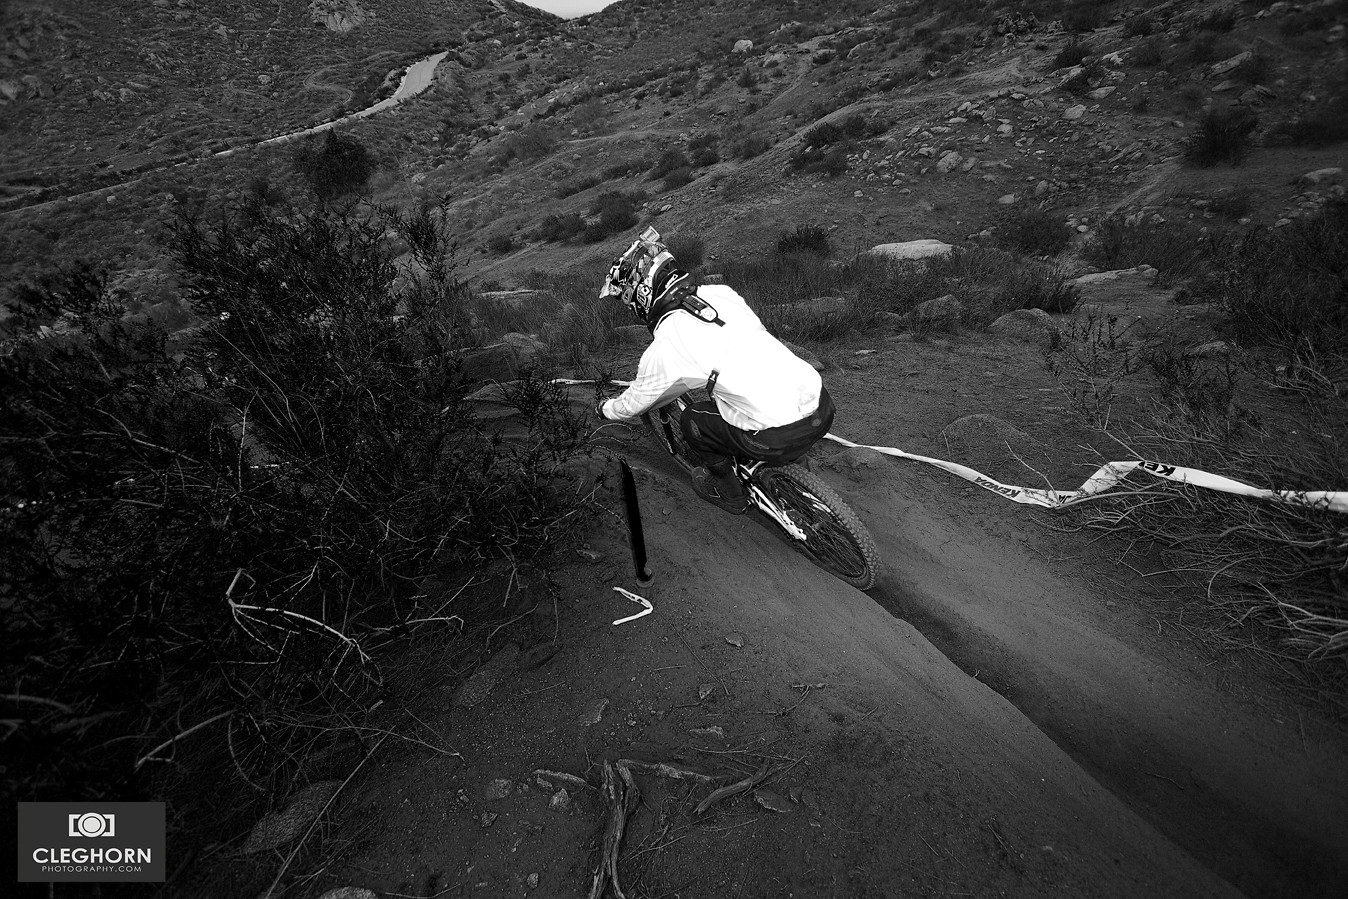 Rutted! - Cleghorn Photography - Mountain Biking Pictures - Vital MTB